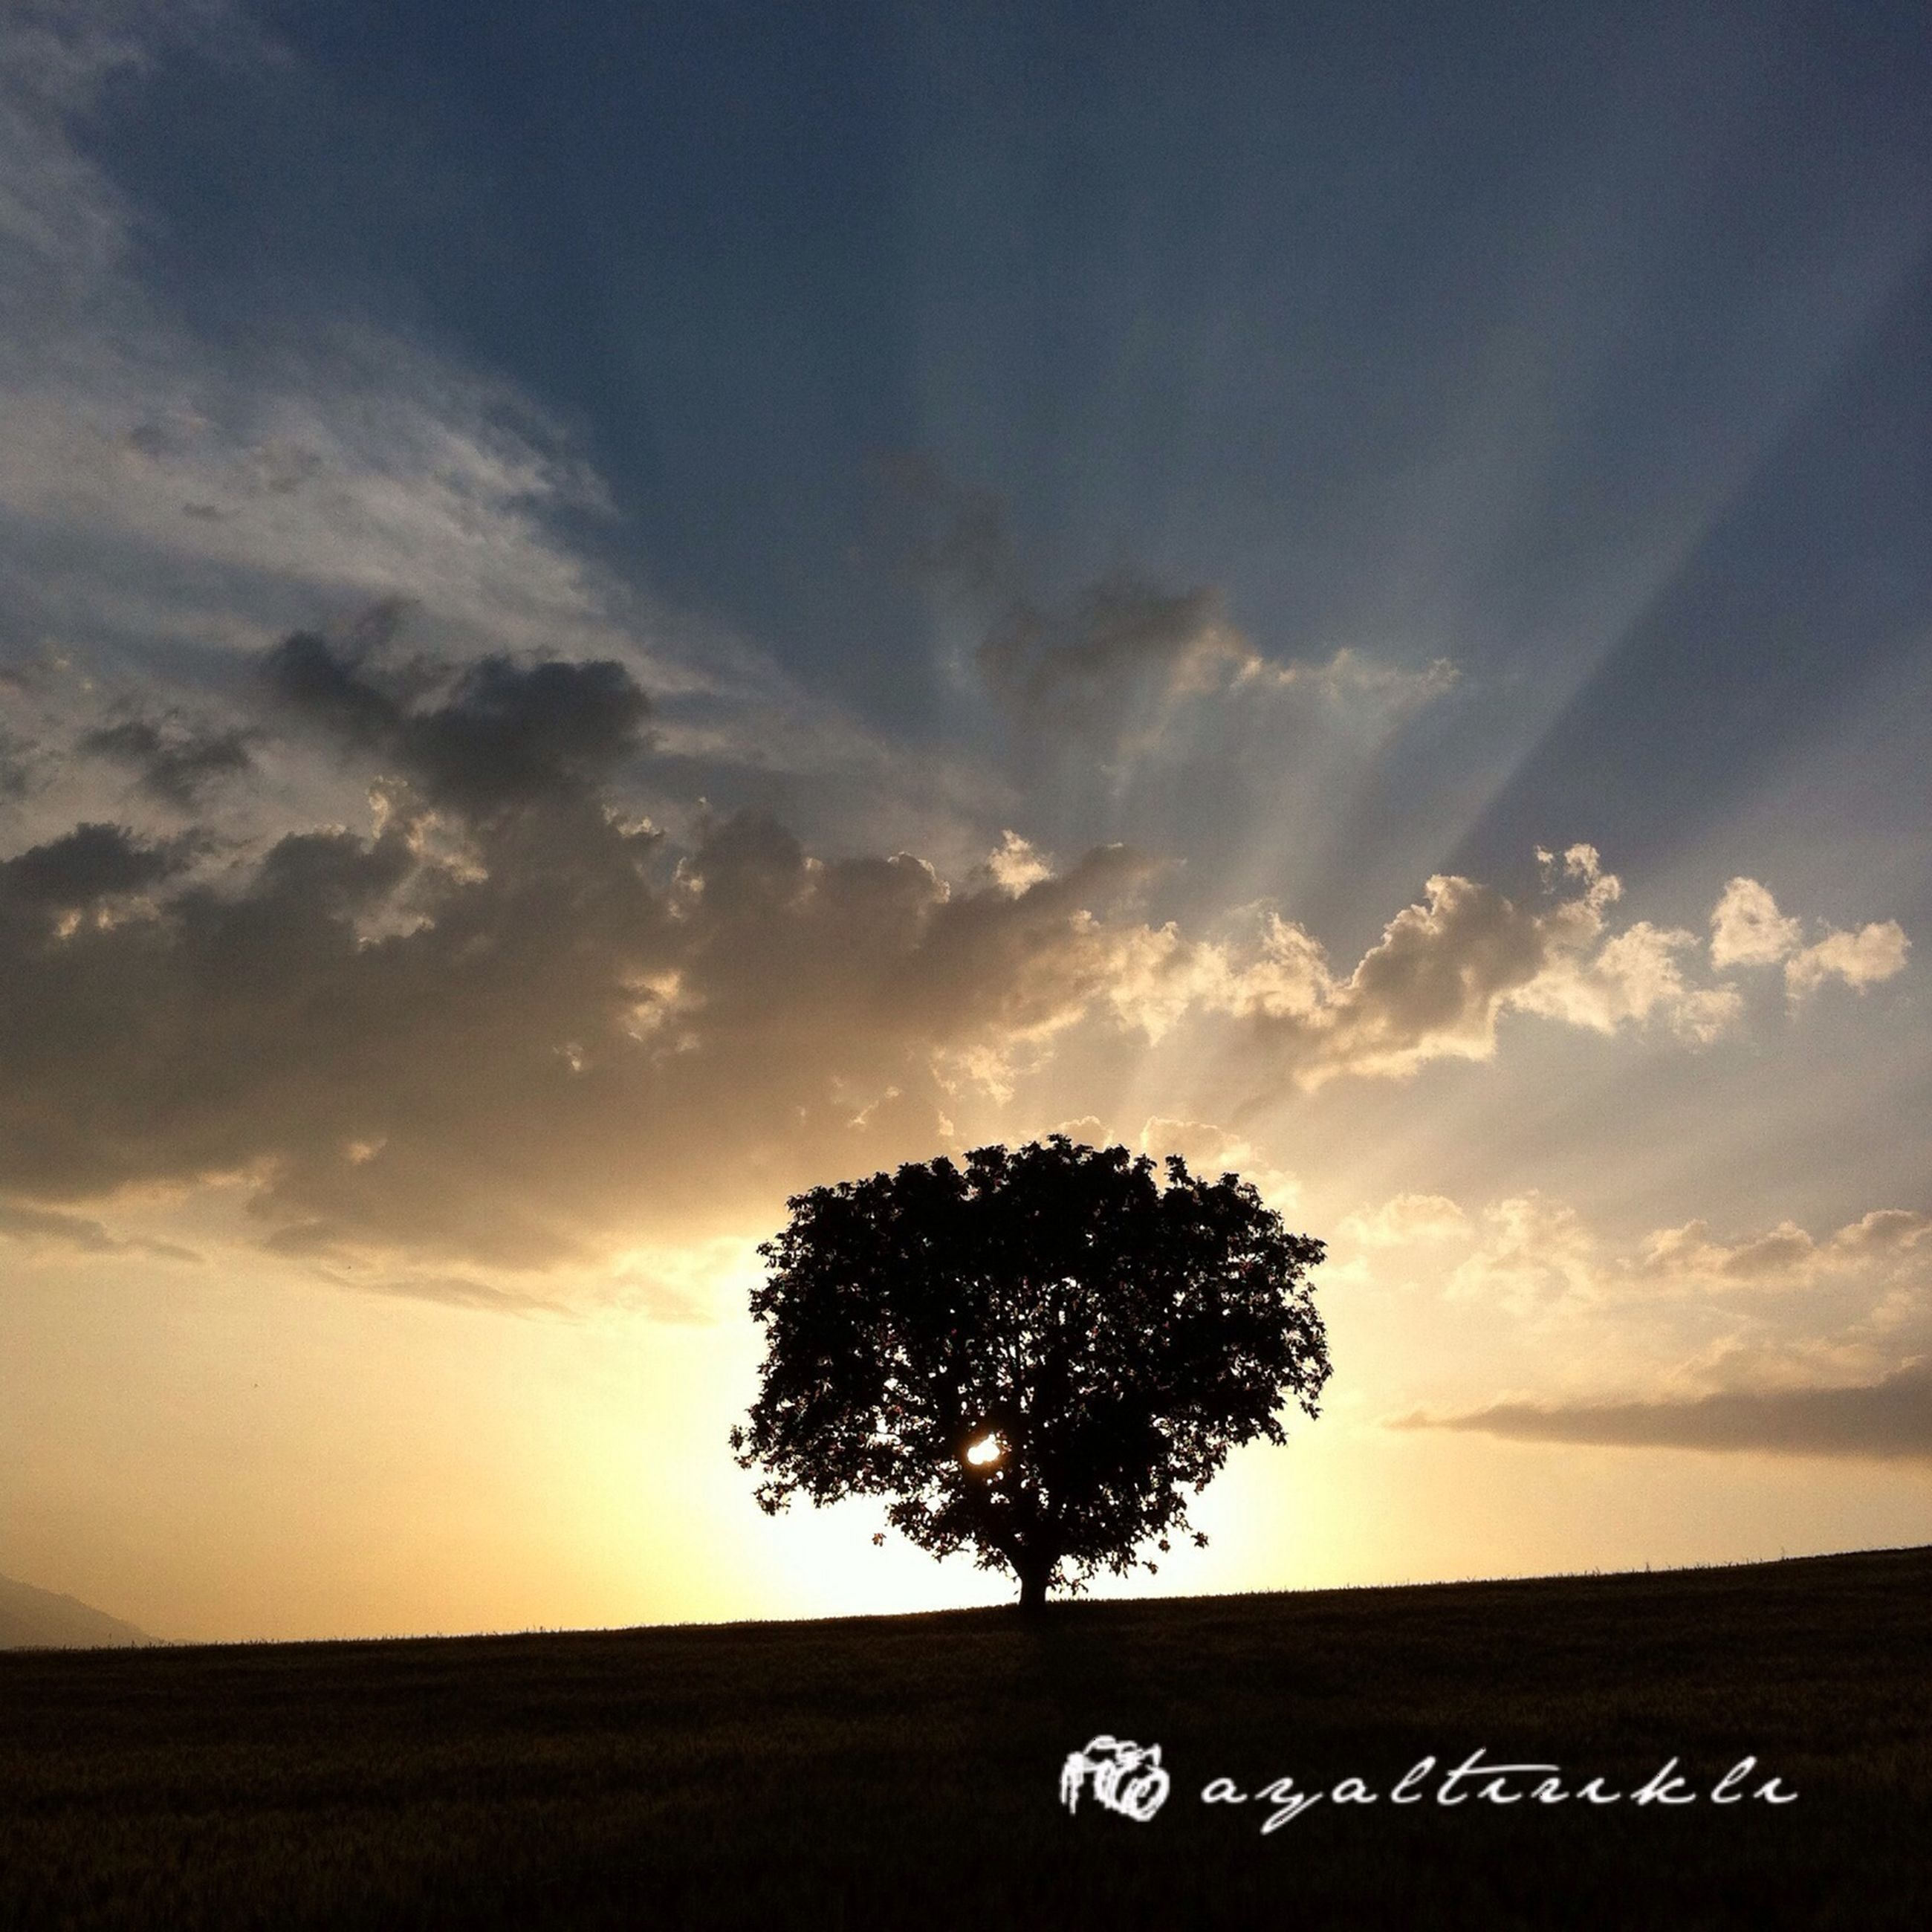 sunset, silhouette, sky, tree, tranquility, tranquil scene, scenics, beauty in nature, landscape, nature, field, cloud - sky, idyllic, growth, cloud, outdoors, non-urban scene, no people, sunlight, remote